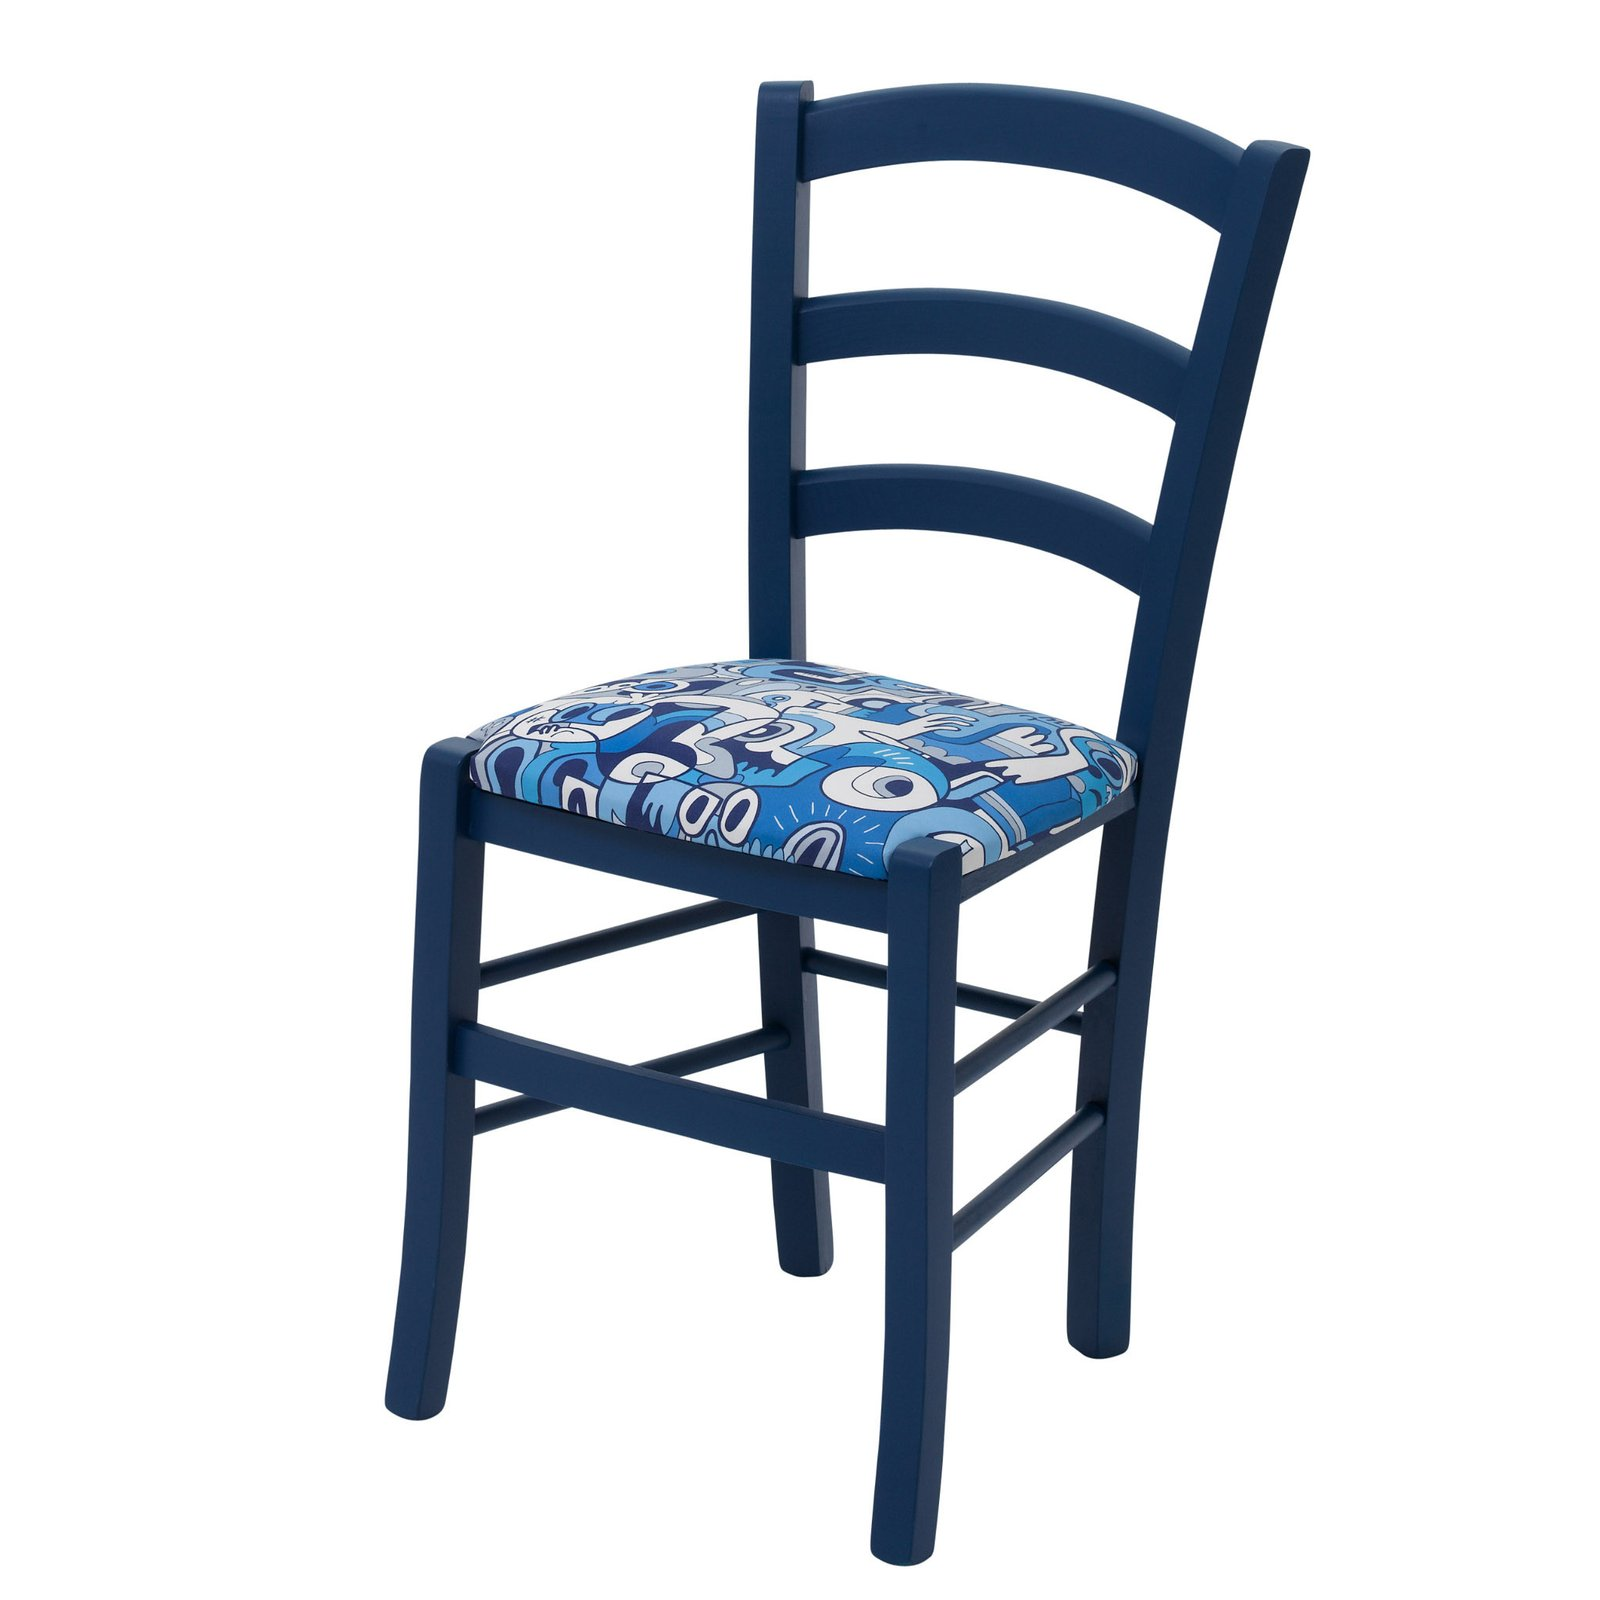 kitchen chairs delta oil rubbed bronze faucet blue daisy by cheeky in deep splash